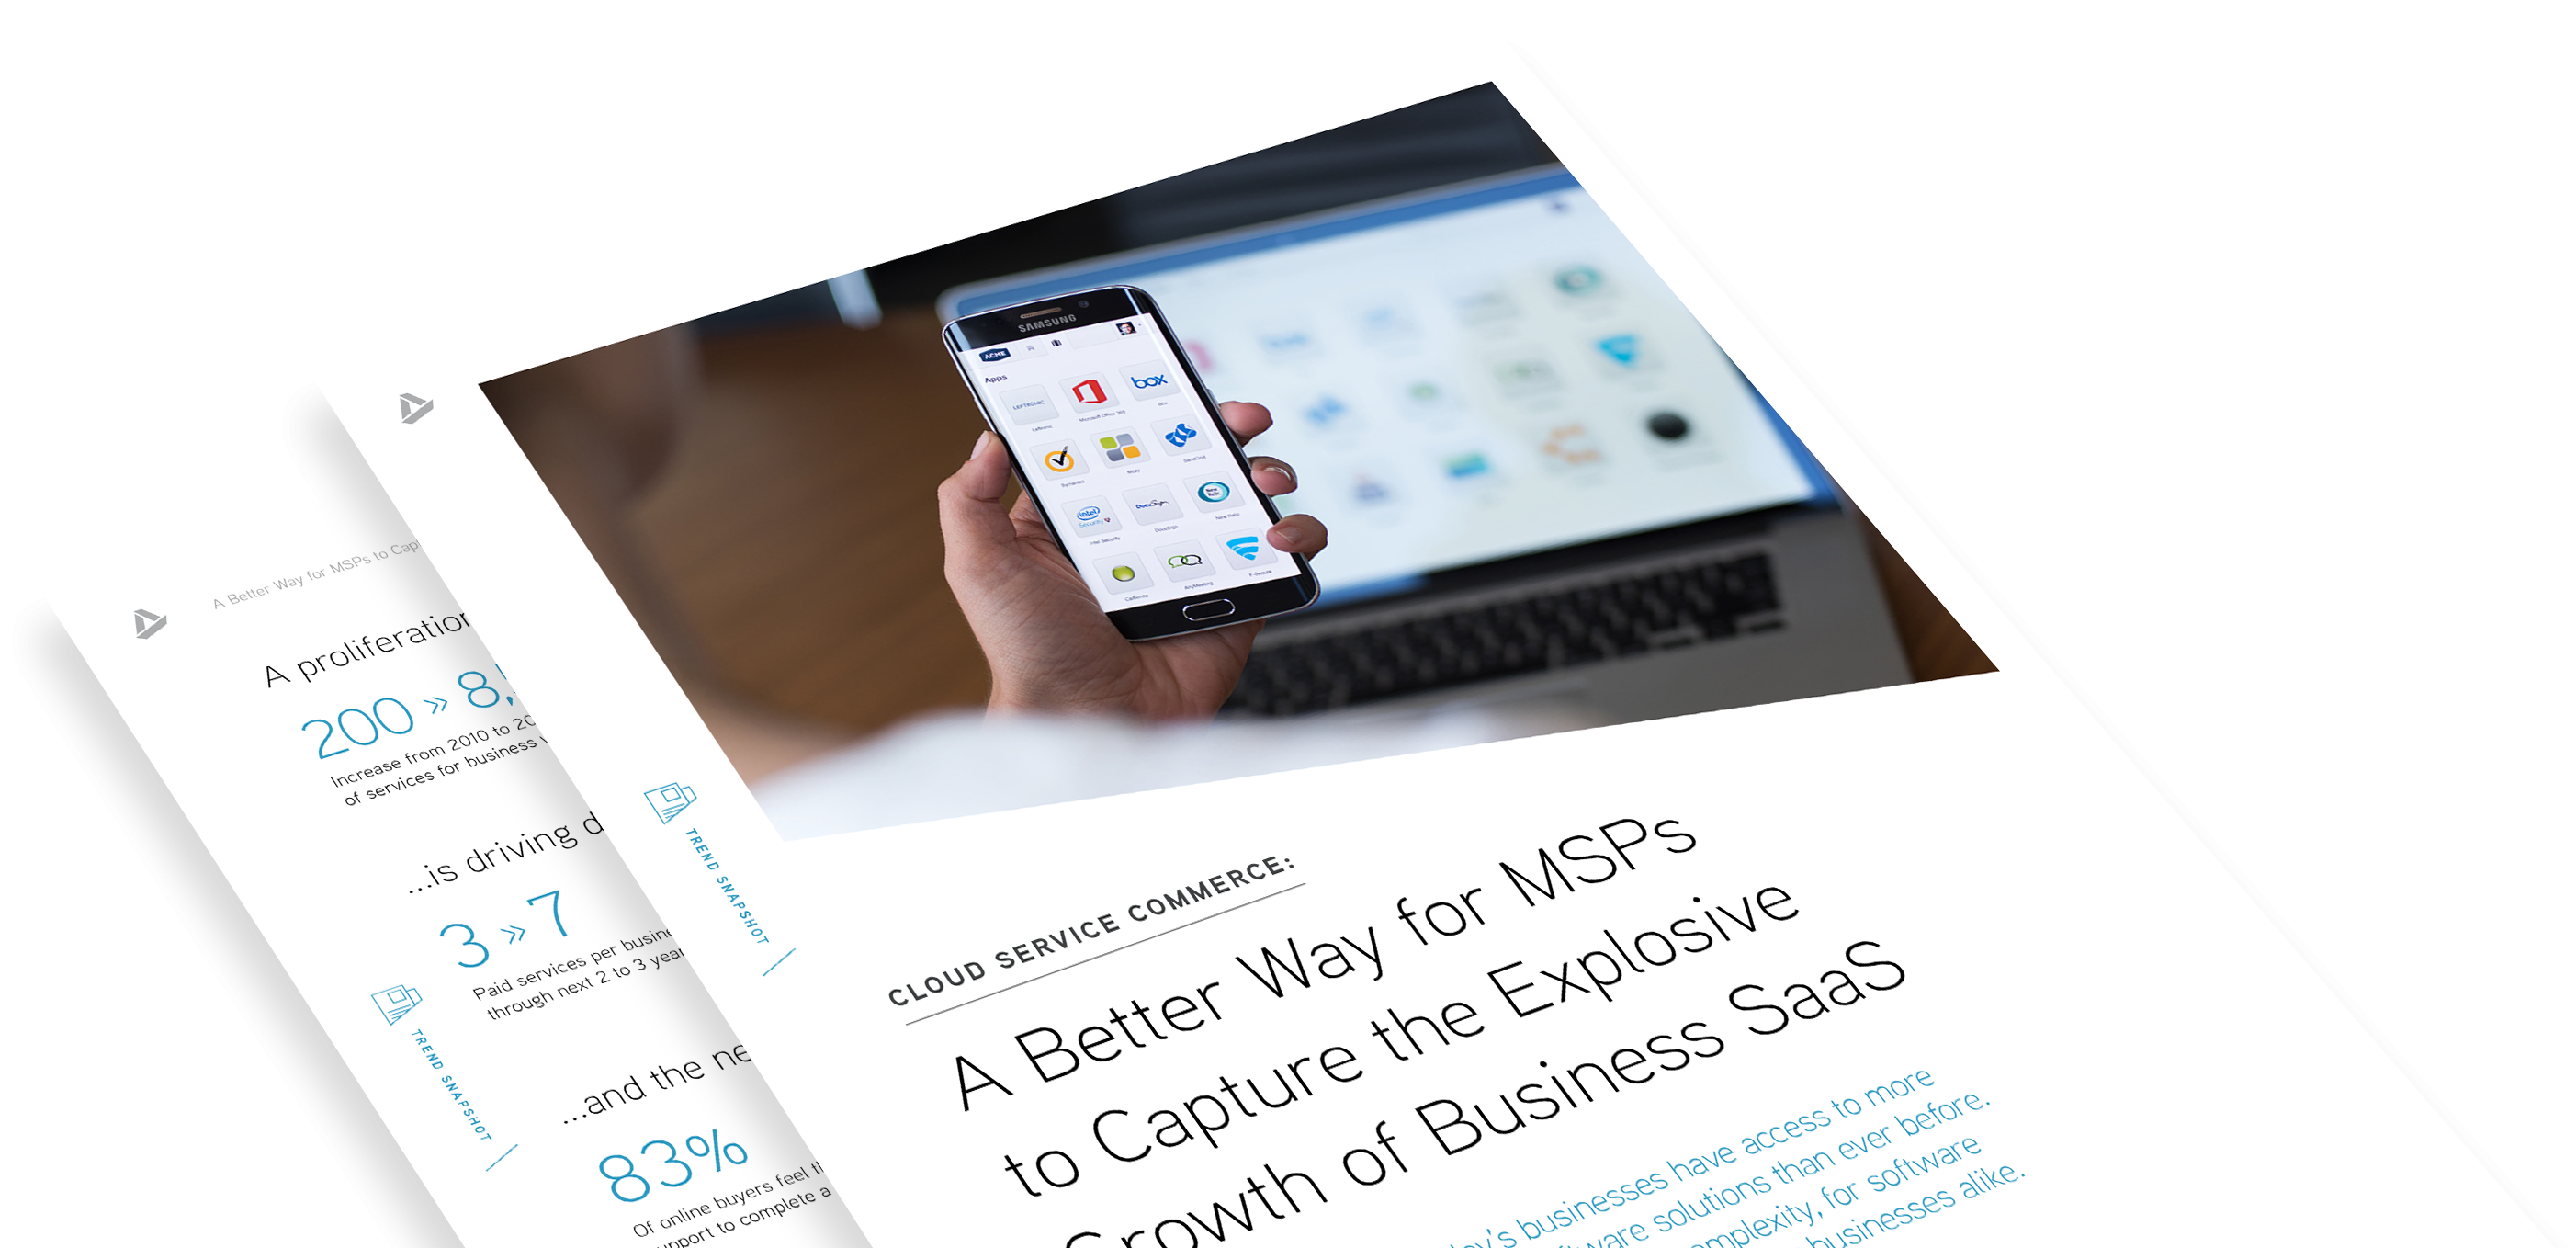 Trend Snapshot: A Better Way for MSPs to Capture the Explosive Growth of Business SaaS